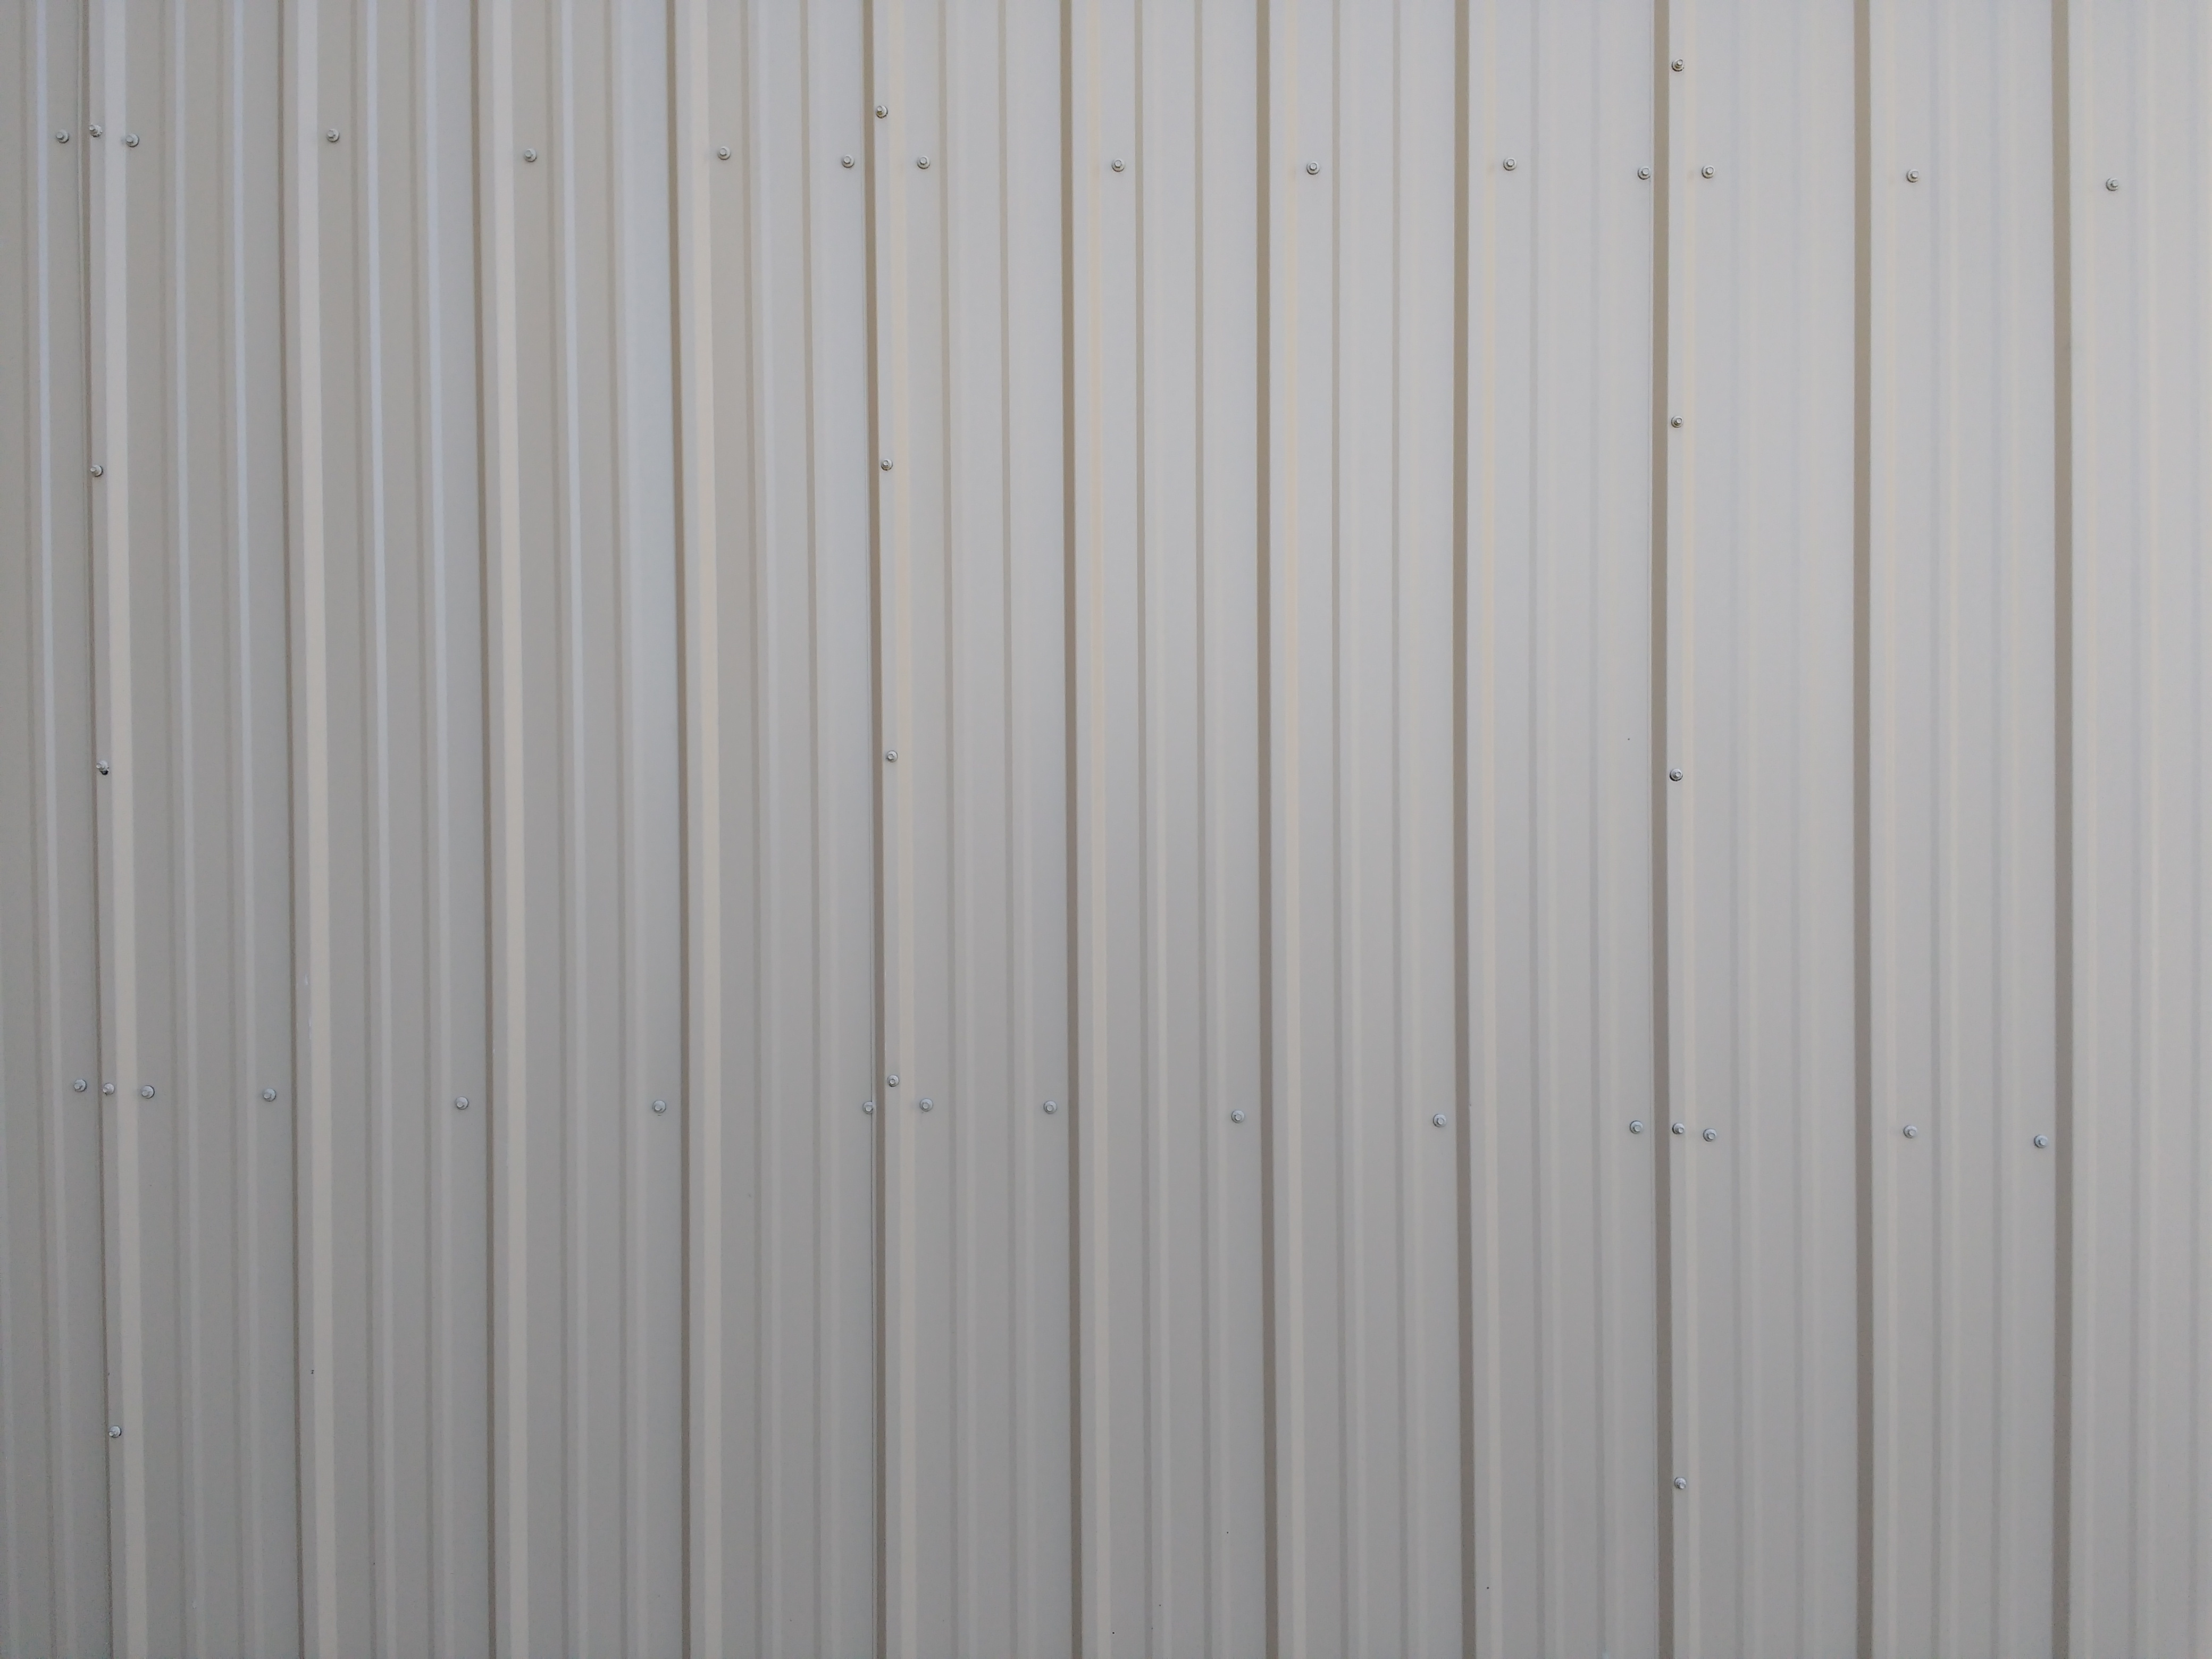 Ribbed metal siding texture beige photos public domain for Vertical metal siding